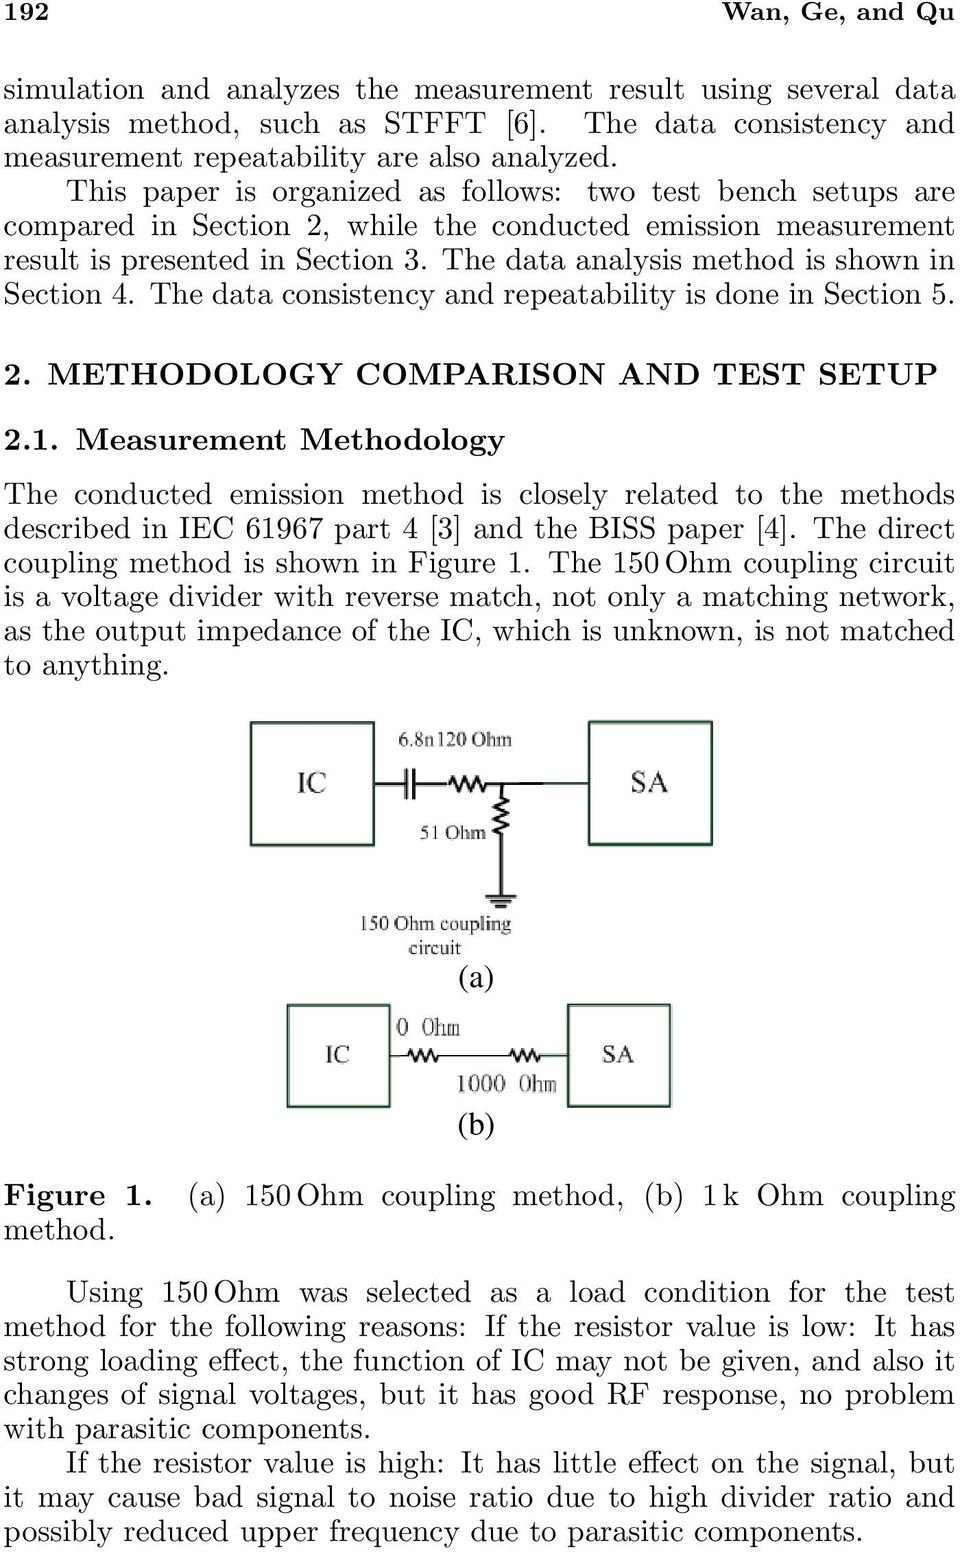 The data analysis method is shown in Section 4. The data consistency and repeatability is done in Section 5. 2. METHODOLOGY COMPAISON AND TEST SETUP 2.1.